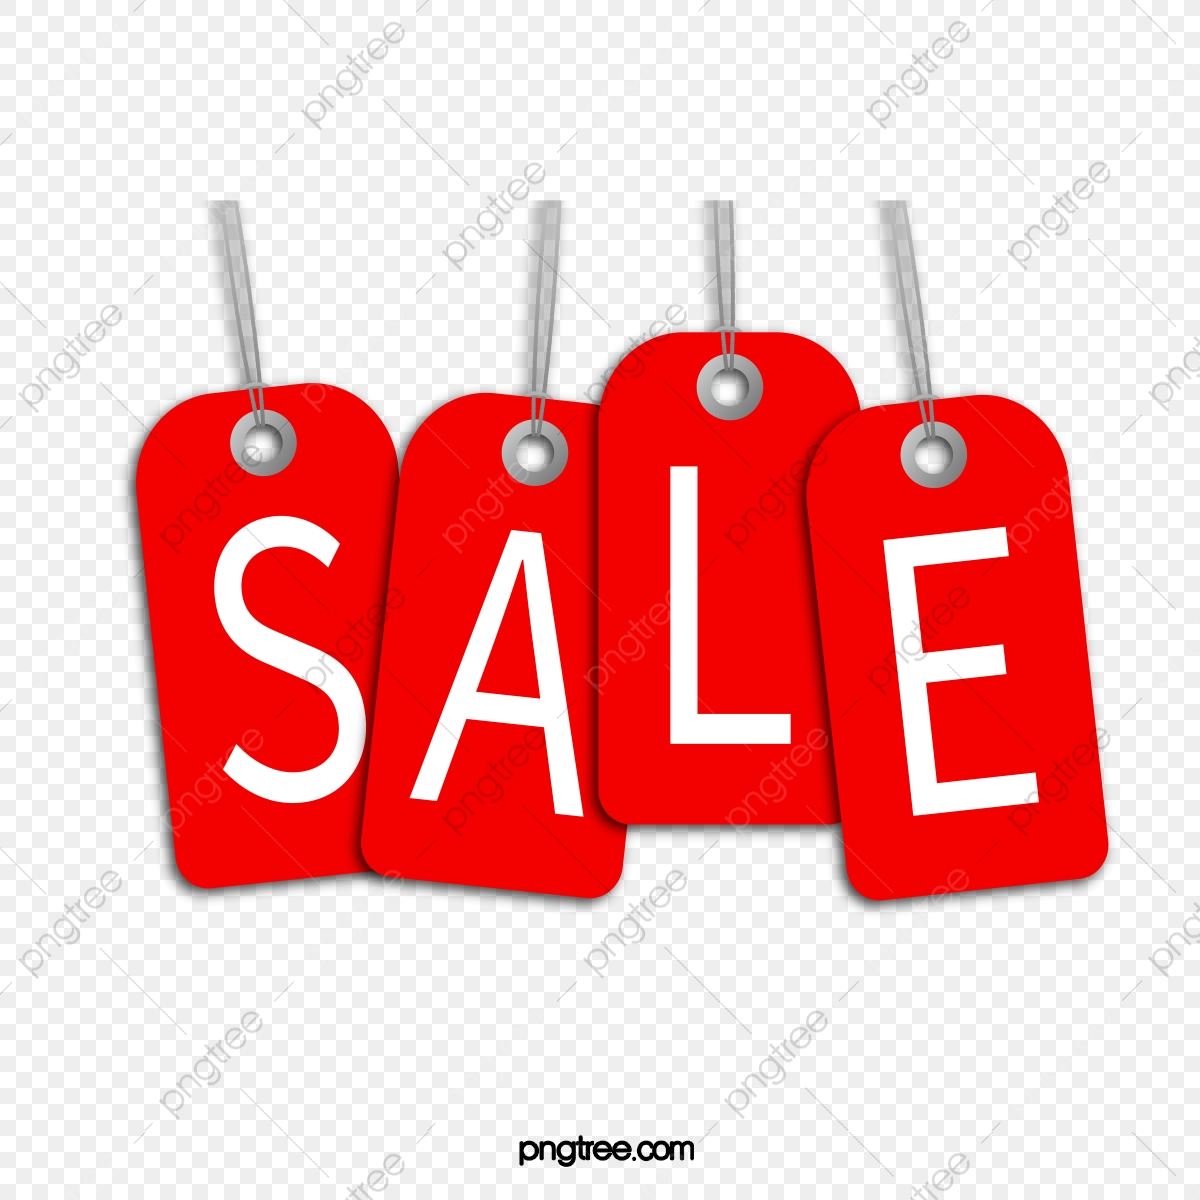 Sell Png - Sale Sells The Plates, Sale Clipart, Sale, Sell PNG Transparent ...